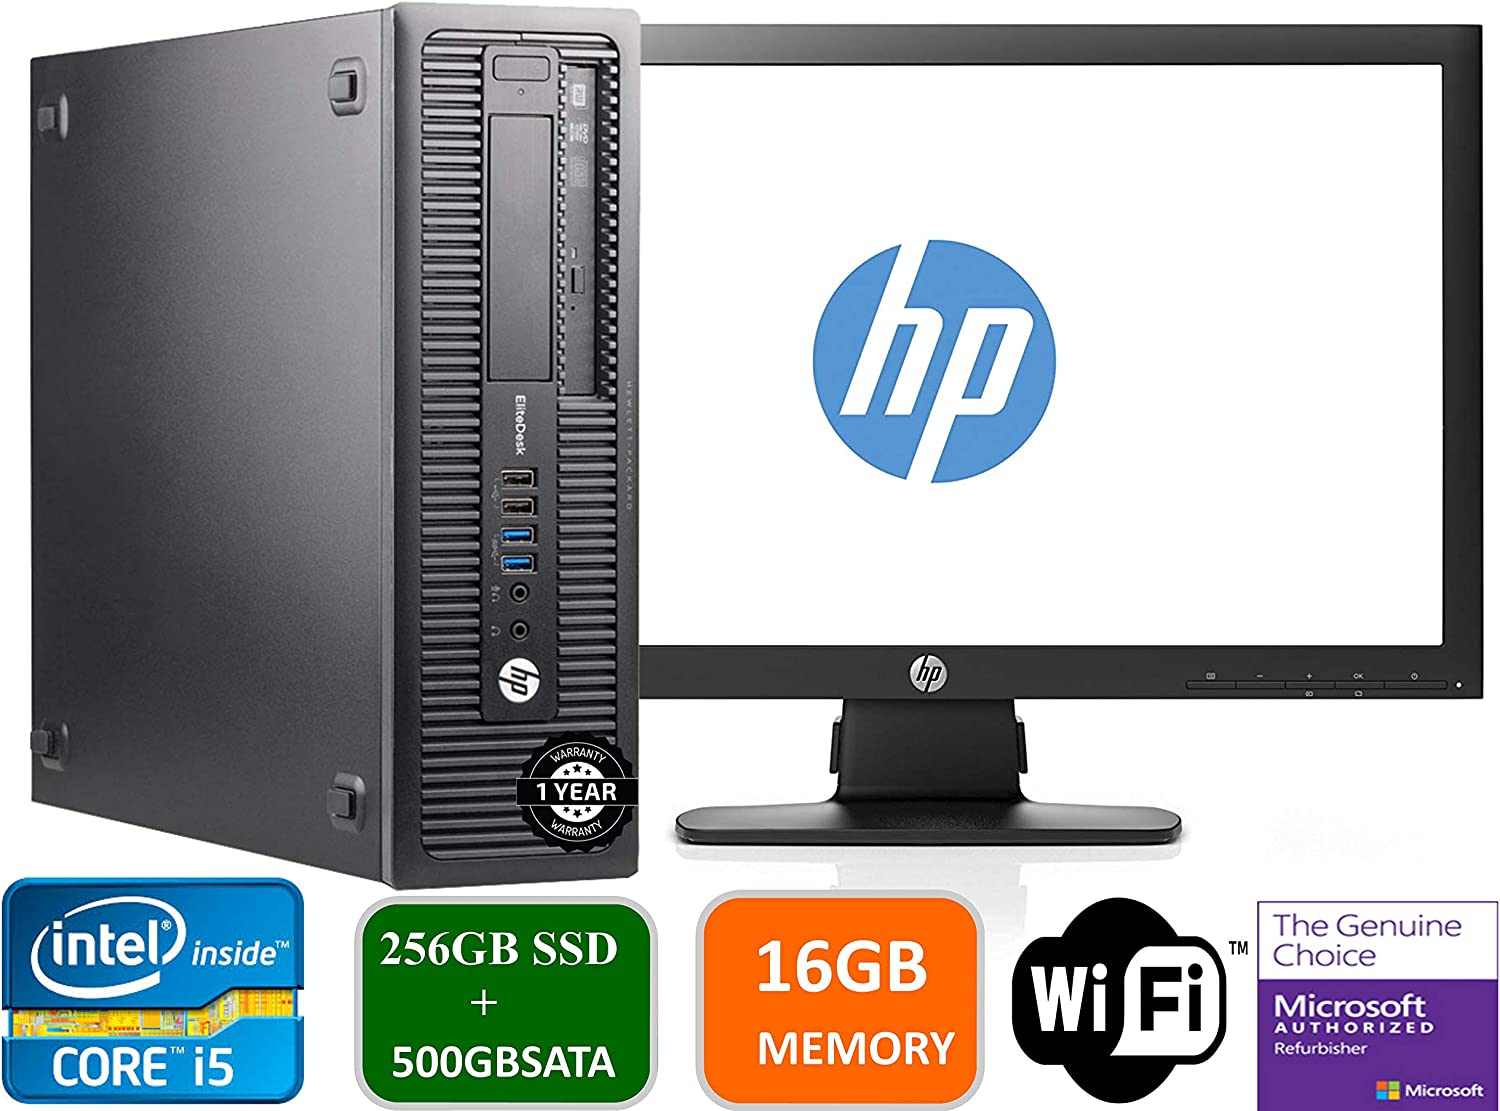 "HP Prodesk 600 G1 SFF Slim Business Desktop Computer, Intel I5-4570 3.20 GHz, 16GB RAM, 256GB SSD + 500gb SATA Drive,with 22"" P221 HP Monitor, DVD, USB 3.0, Windows 10 Pro 64 Bit (Renewed)"